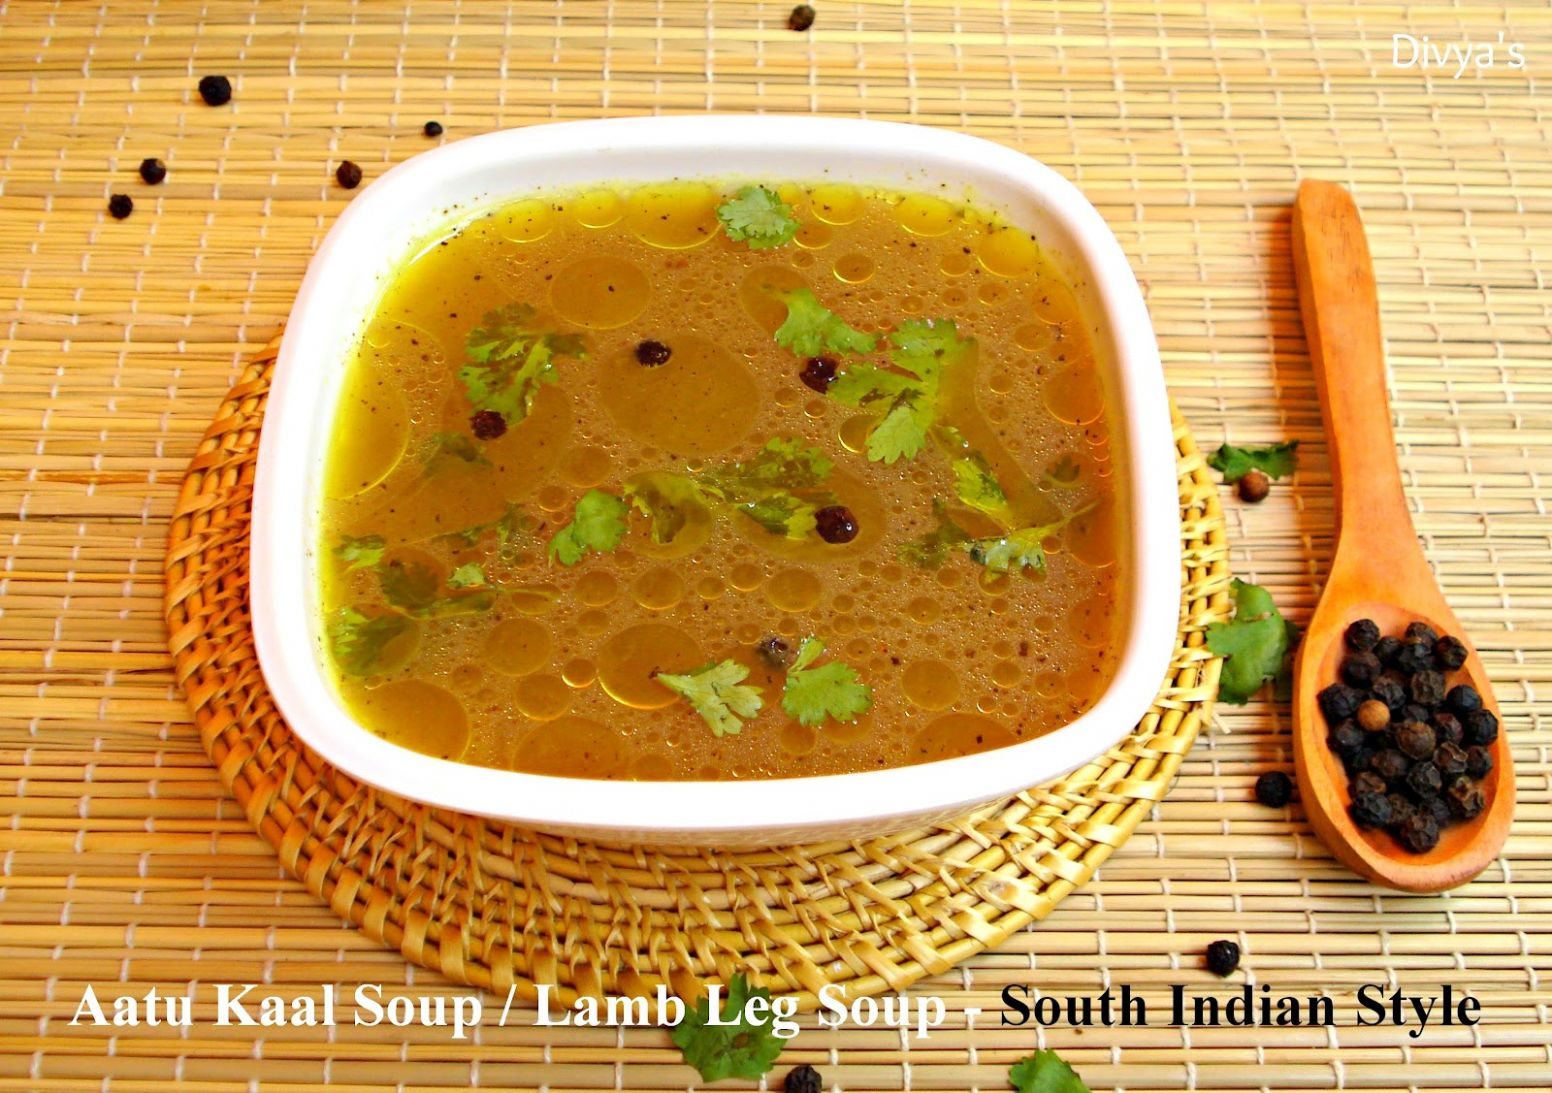 Aatu Kaal Soup / Lamb Leg Soup - South Indian Style - You Too Can Cook - Soup Recipes Yummy Tummy